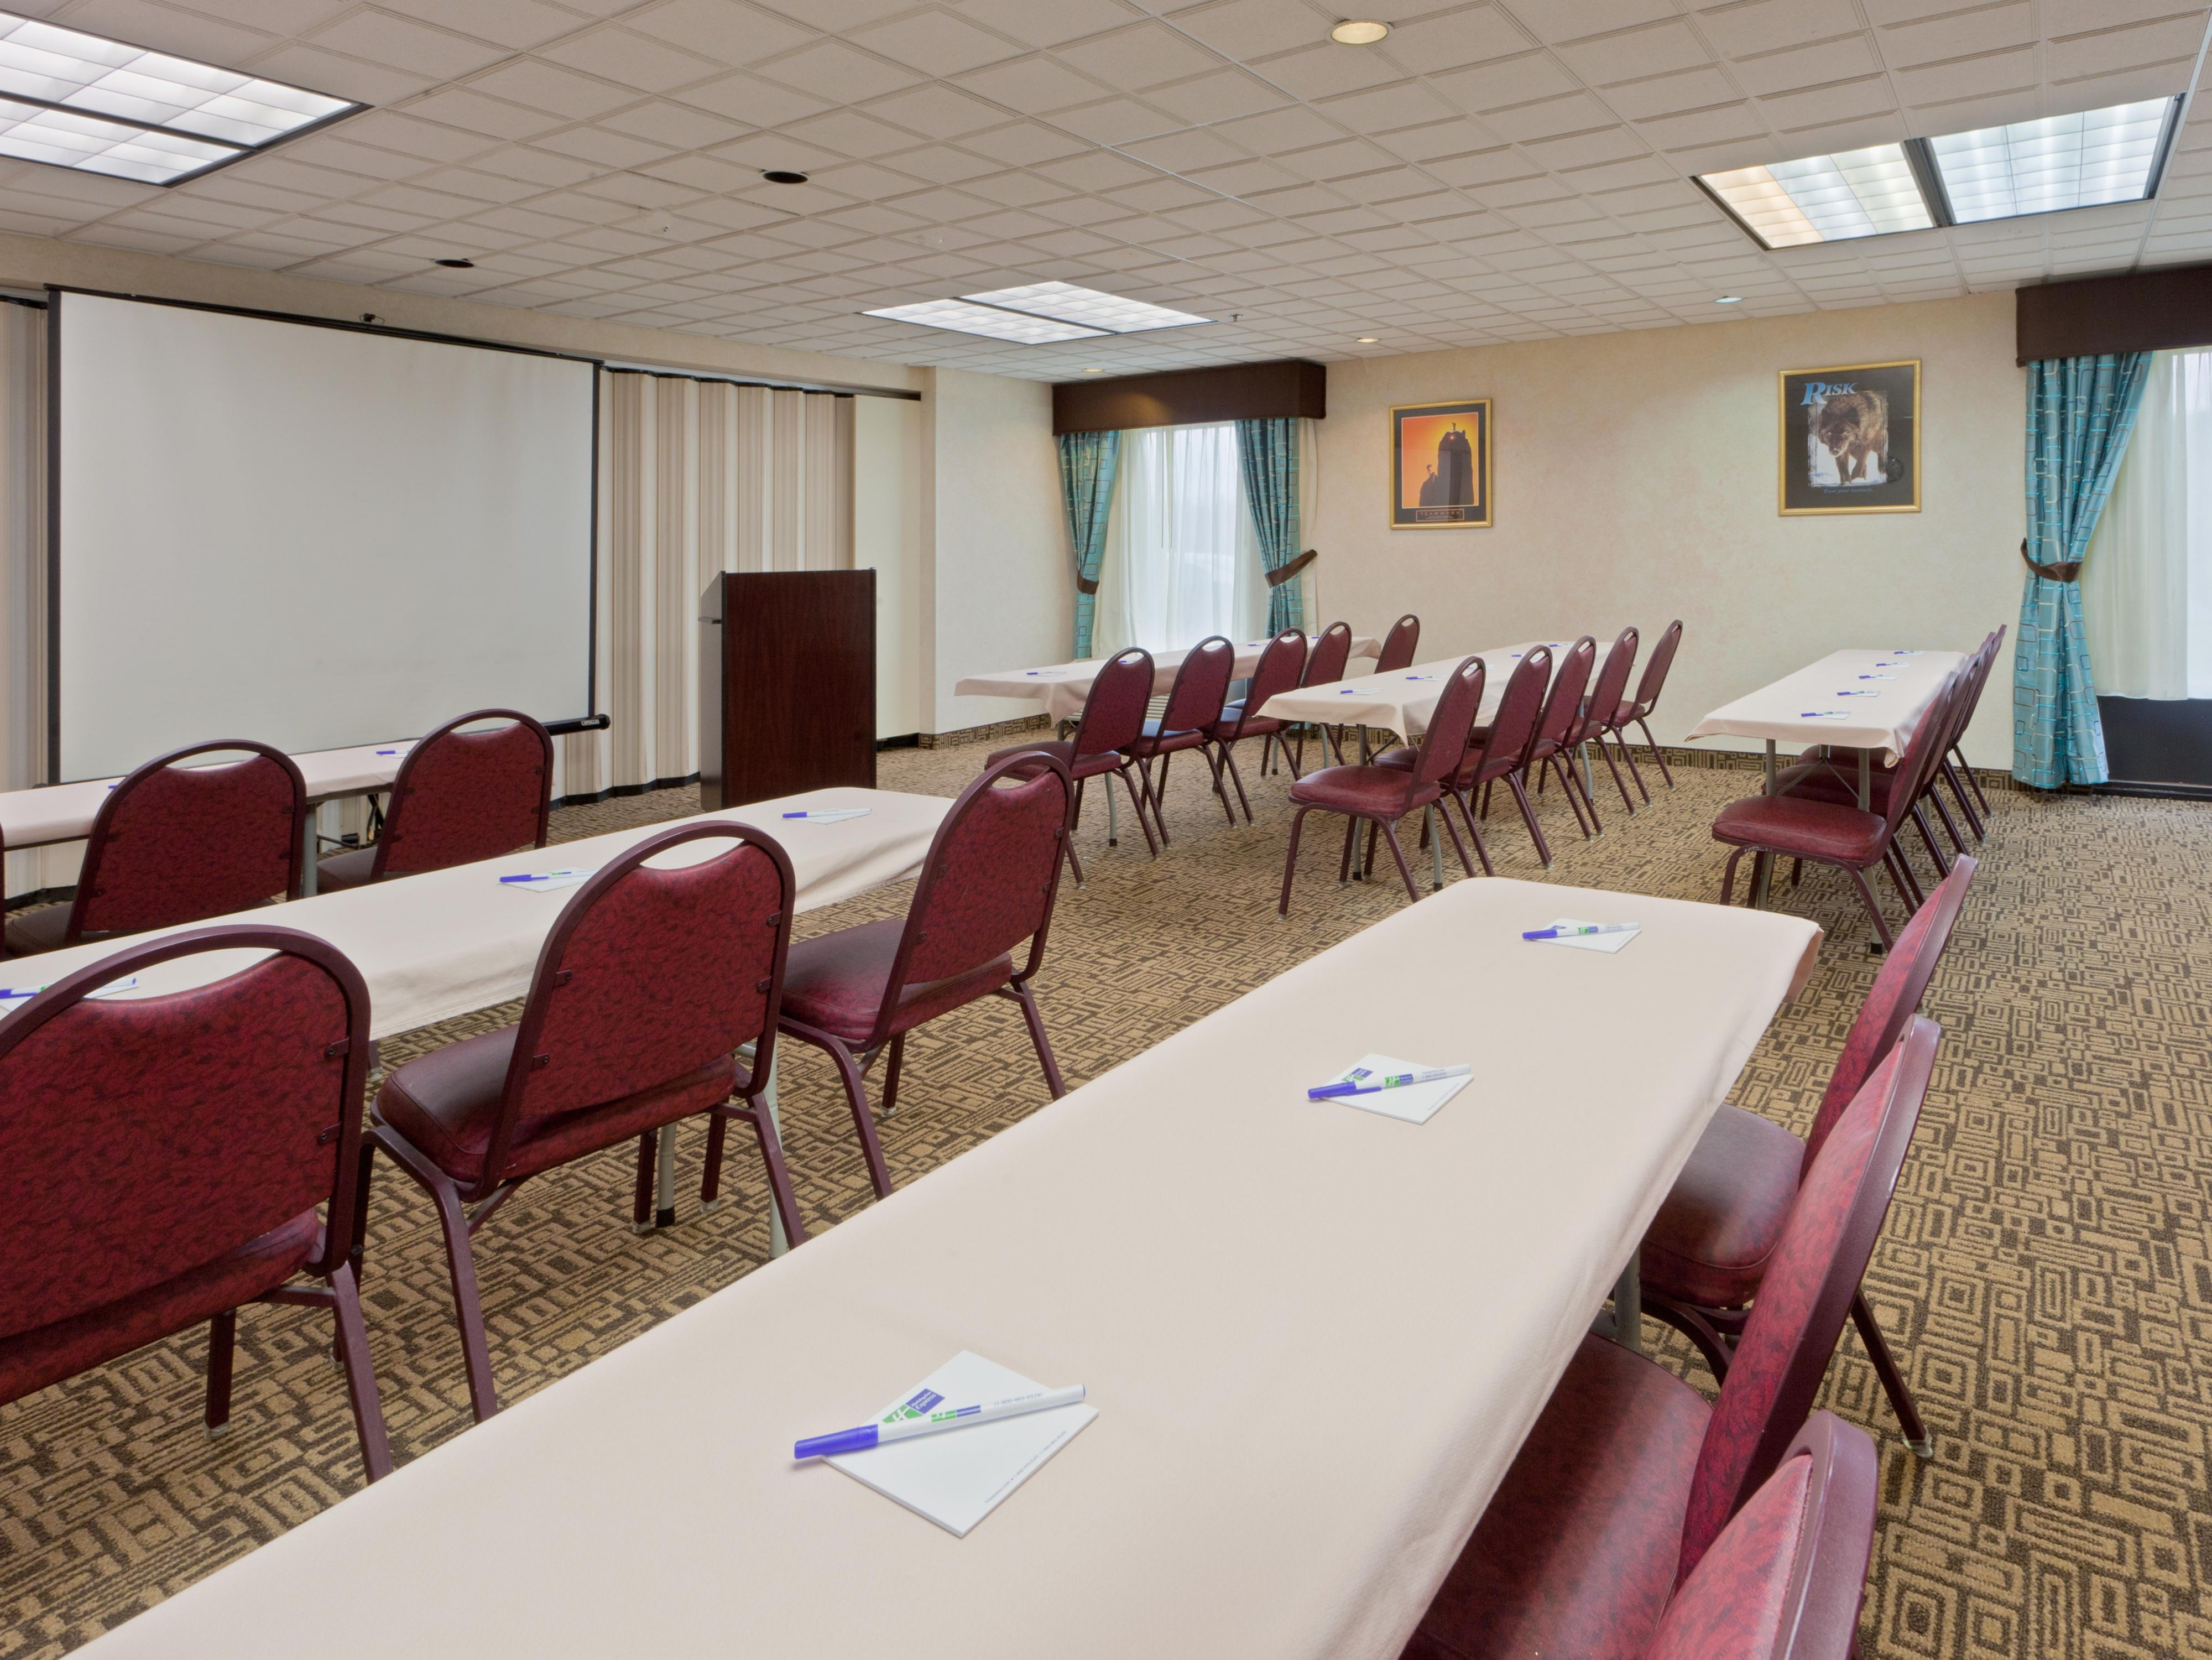 We can take care of all your conference space needs!